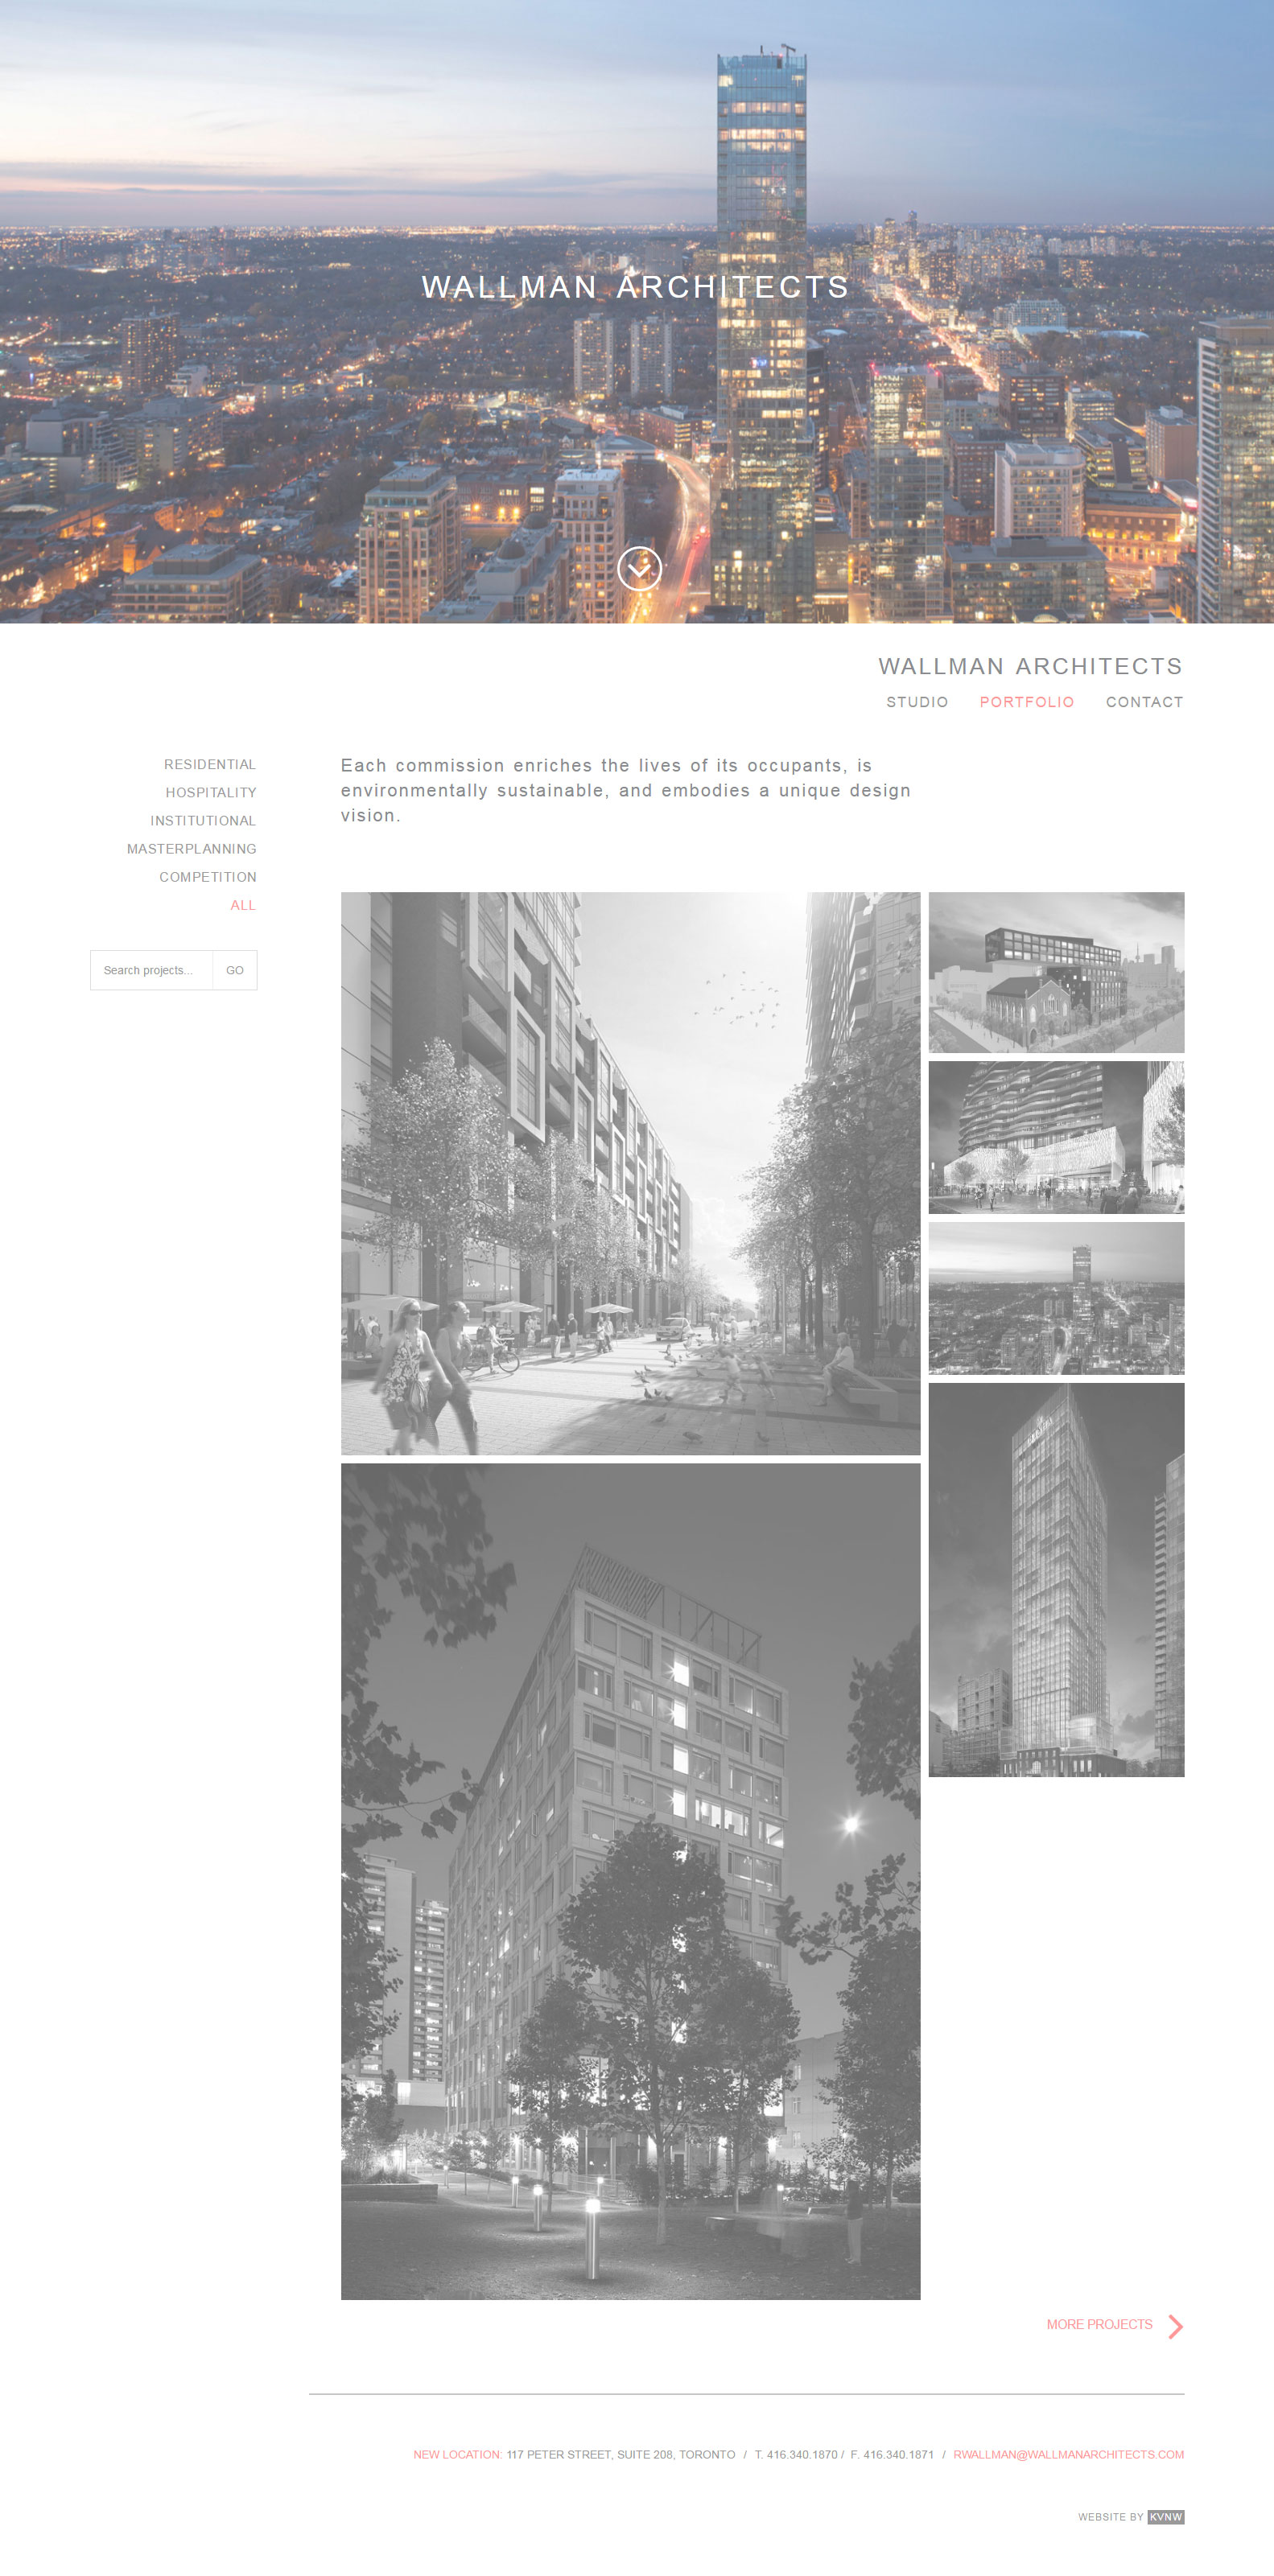 Wallman Architects Website Design Mockup Toronto